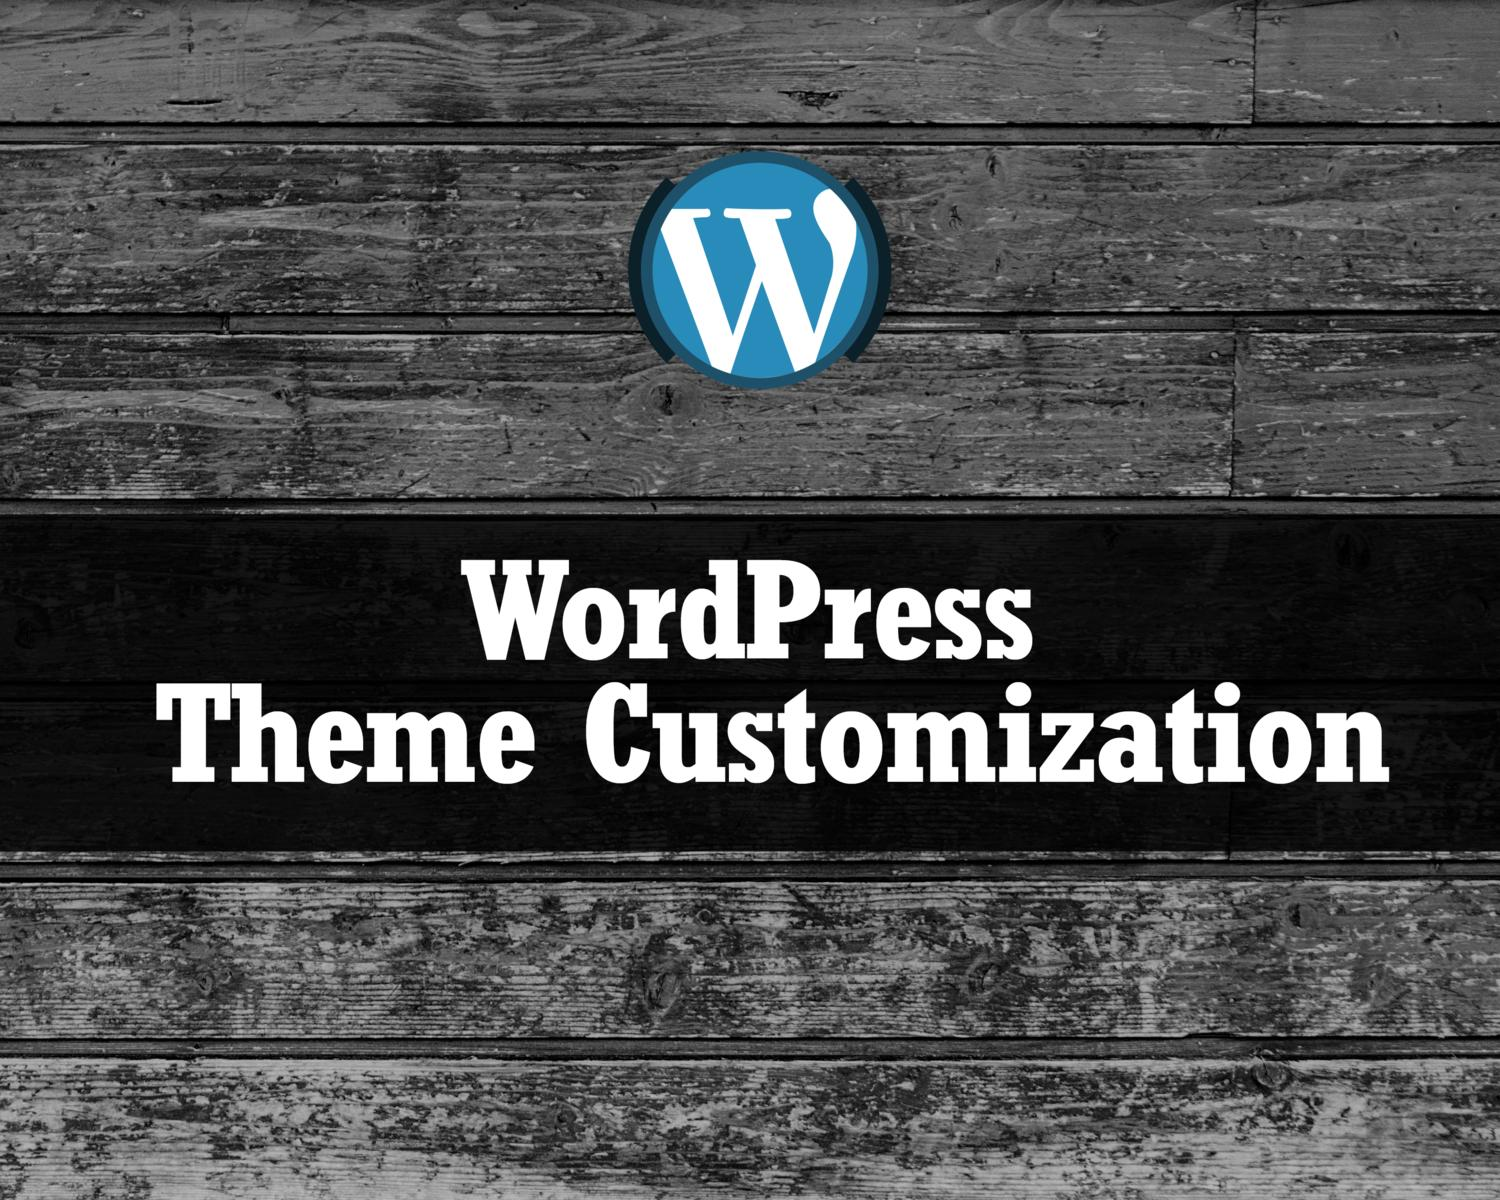 Advanced WordPress Theme Customization by hasanet - 75533